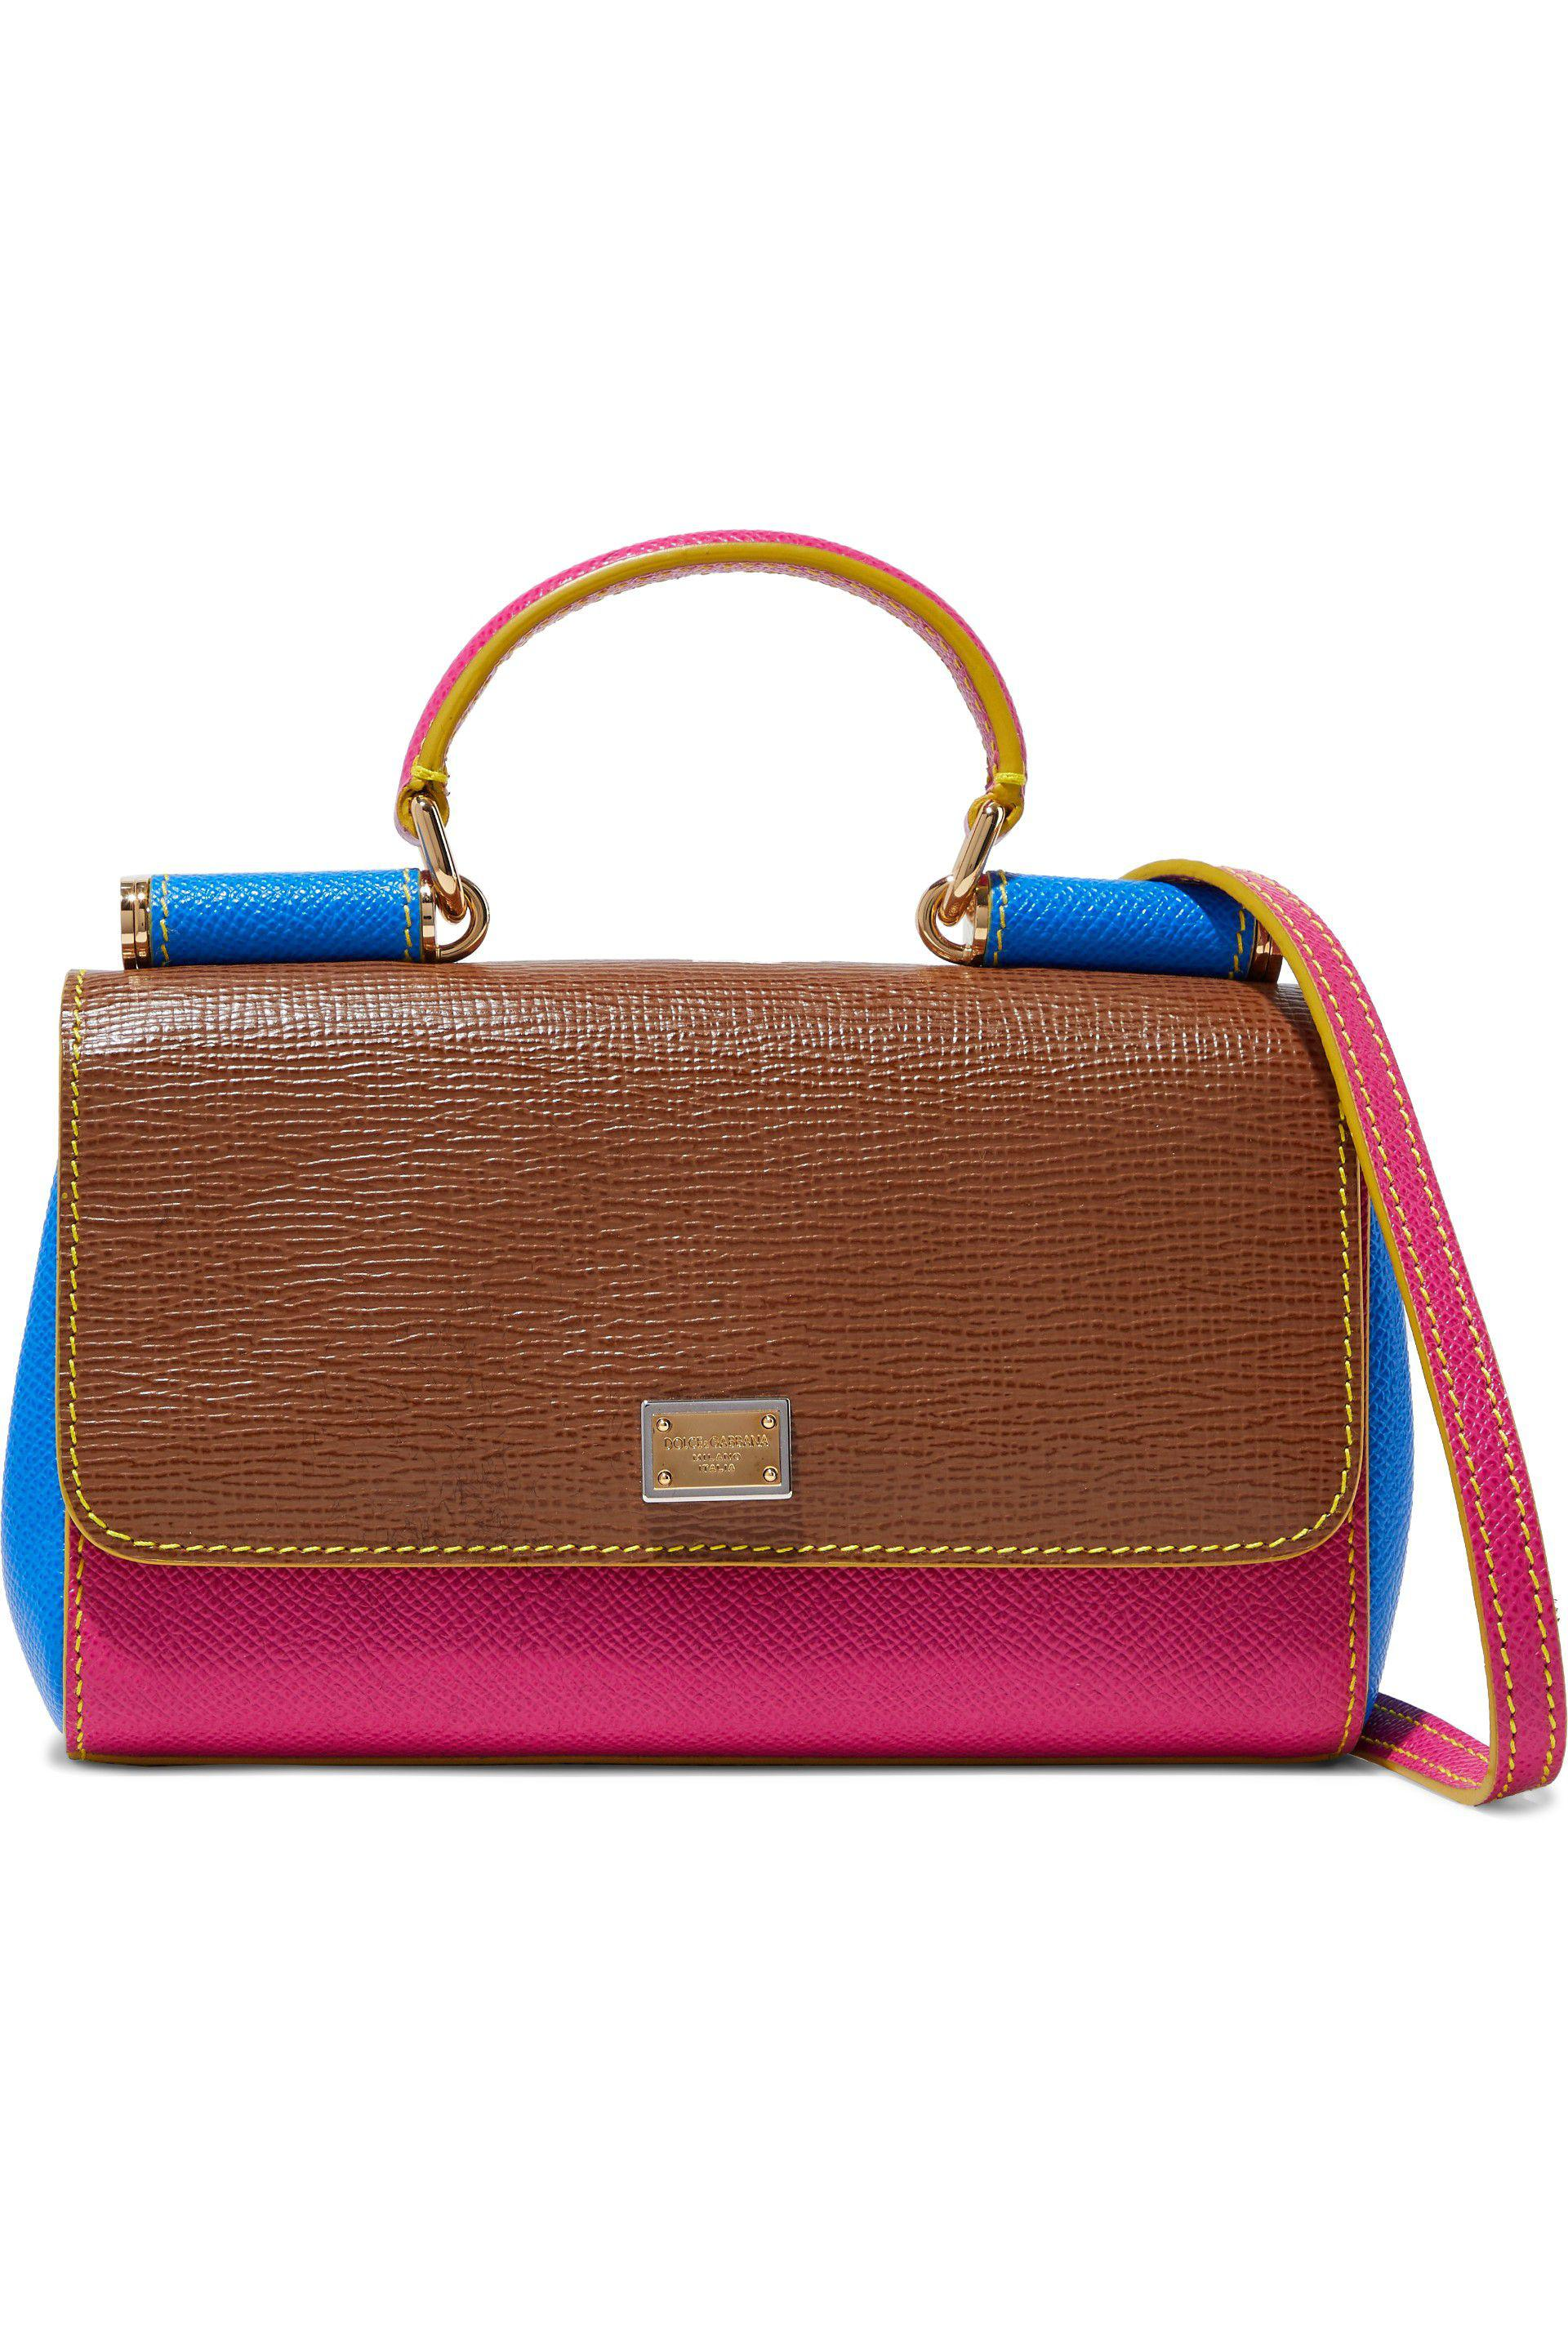 133816f590 Lyst - Dolce   Gabbana Miss Sicily Color-block Textured-leather ...